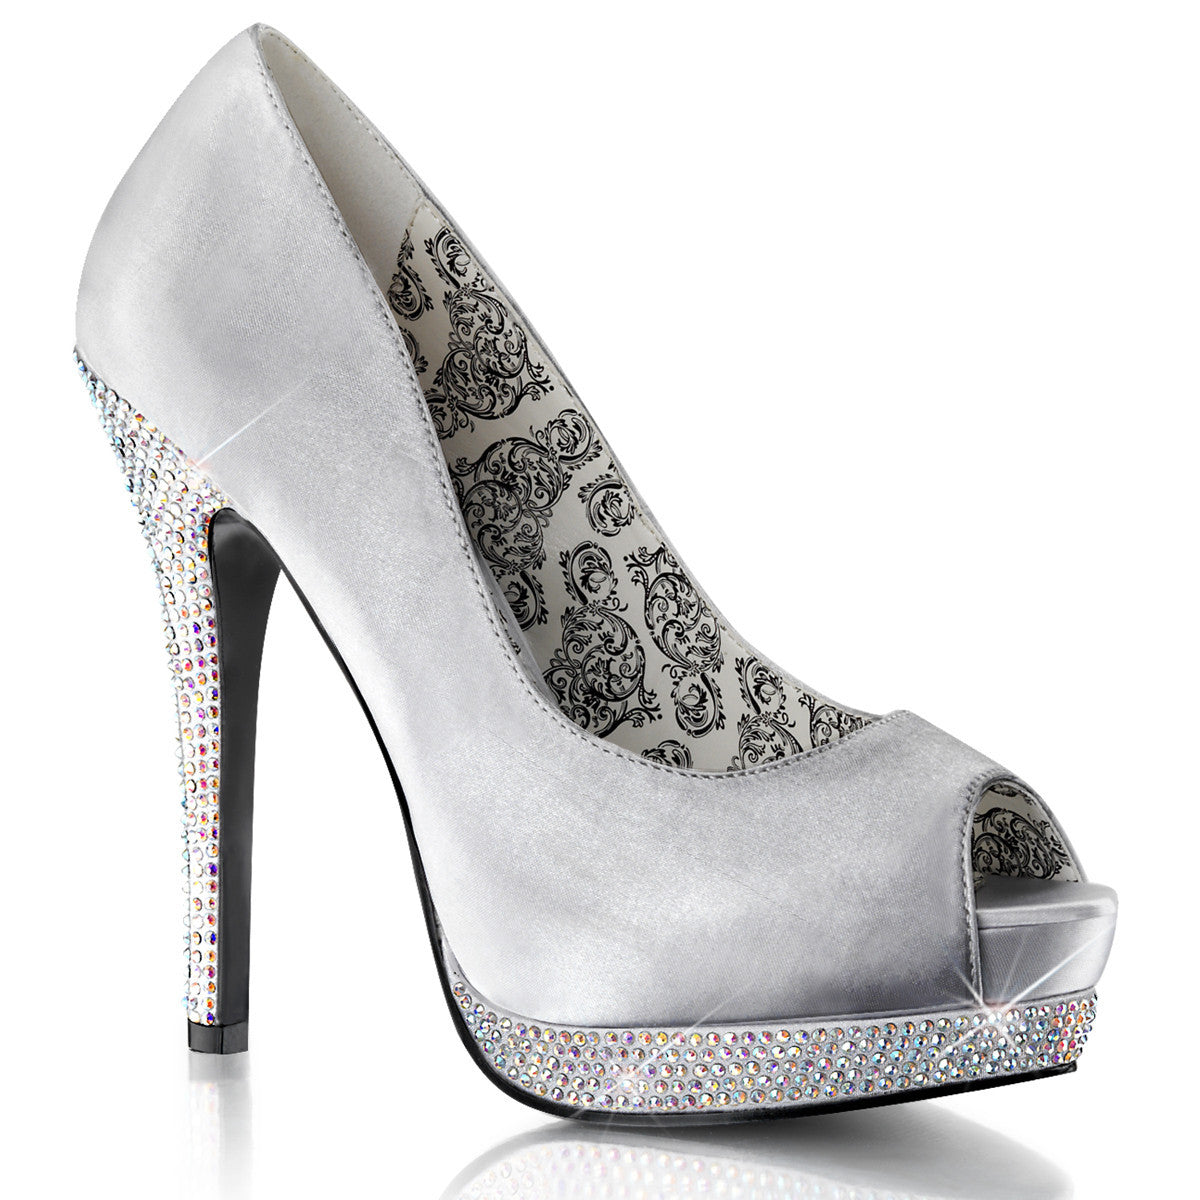 Peep Toe Pump Featuring Rhinestones Covering Lower Platform - PlaythingsMiami